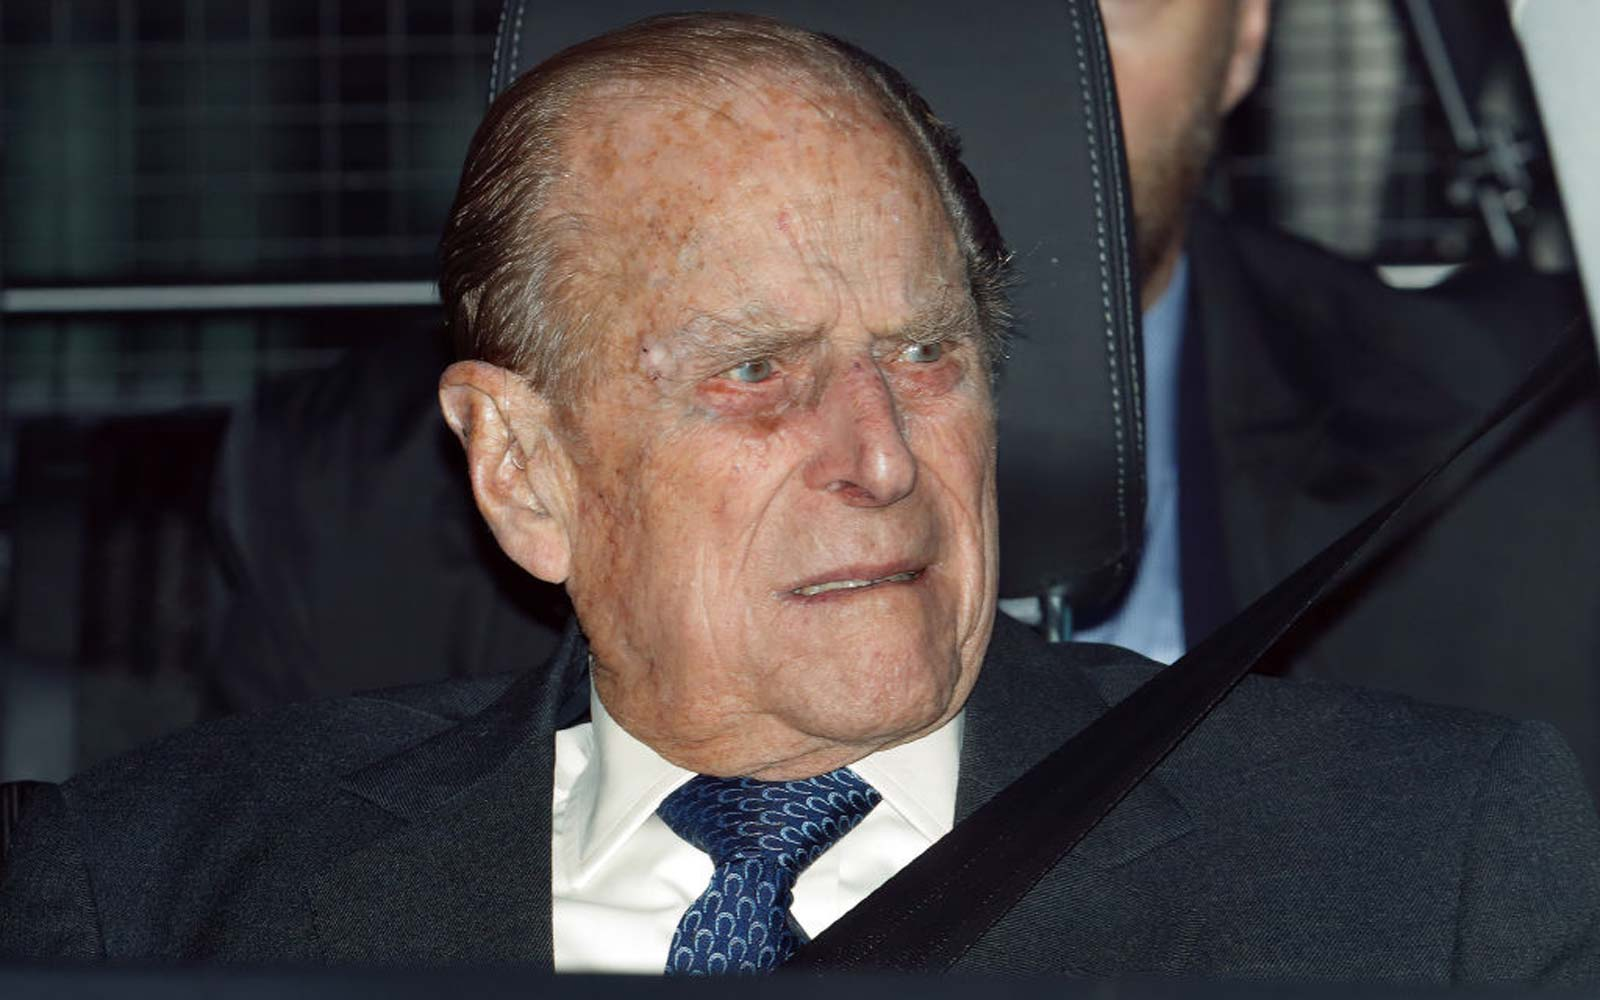 Prince Philip Involved in Car Crash That Overturned His Range Rover Near Sandringham Estate